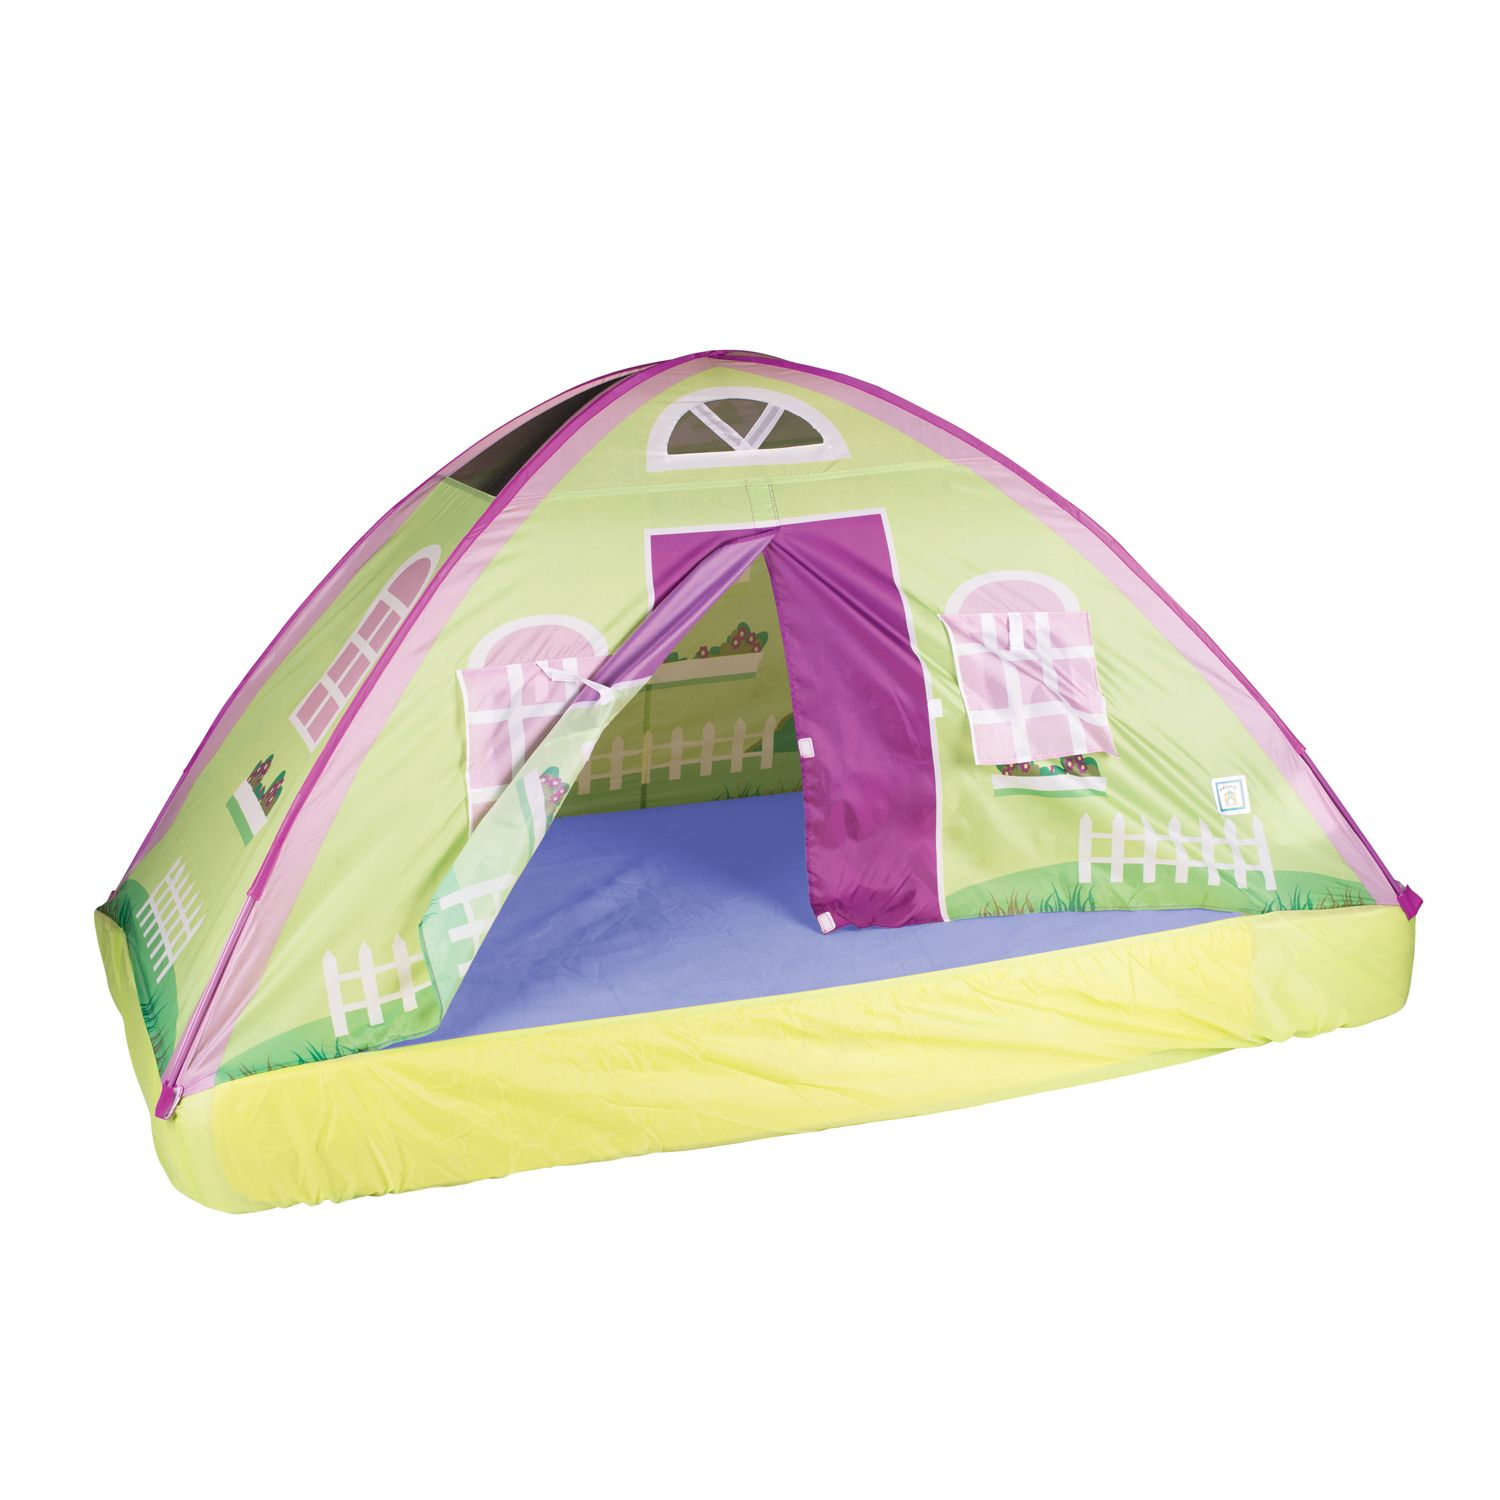 Pacific Play Tents Cottage Full-Sized Bed Tent  sc 1 st  Kohlu0027s & Pacific Play Tents Cottage Full-Sized Bed Tent | null